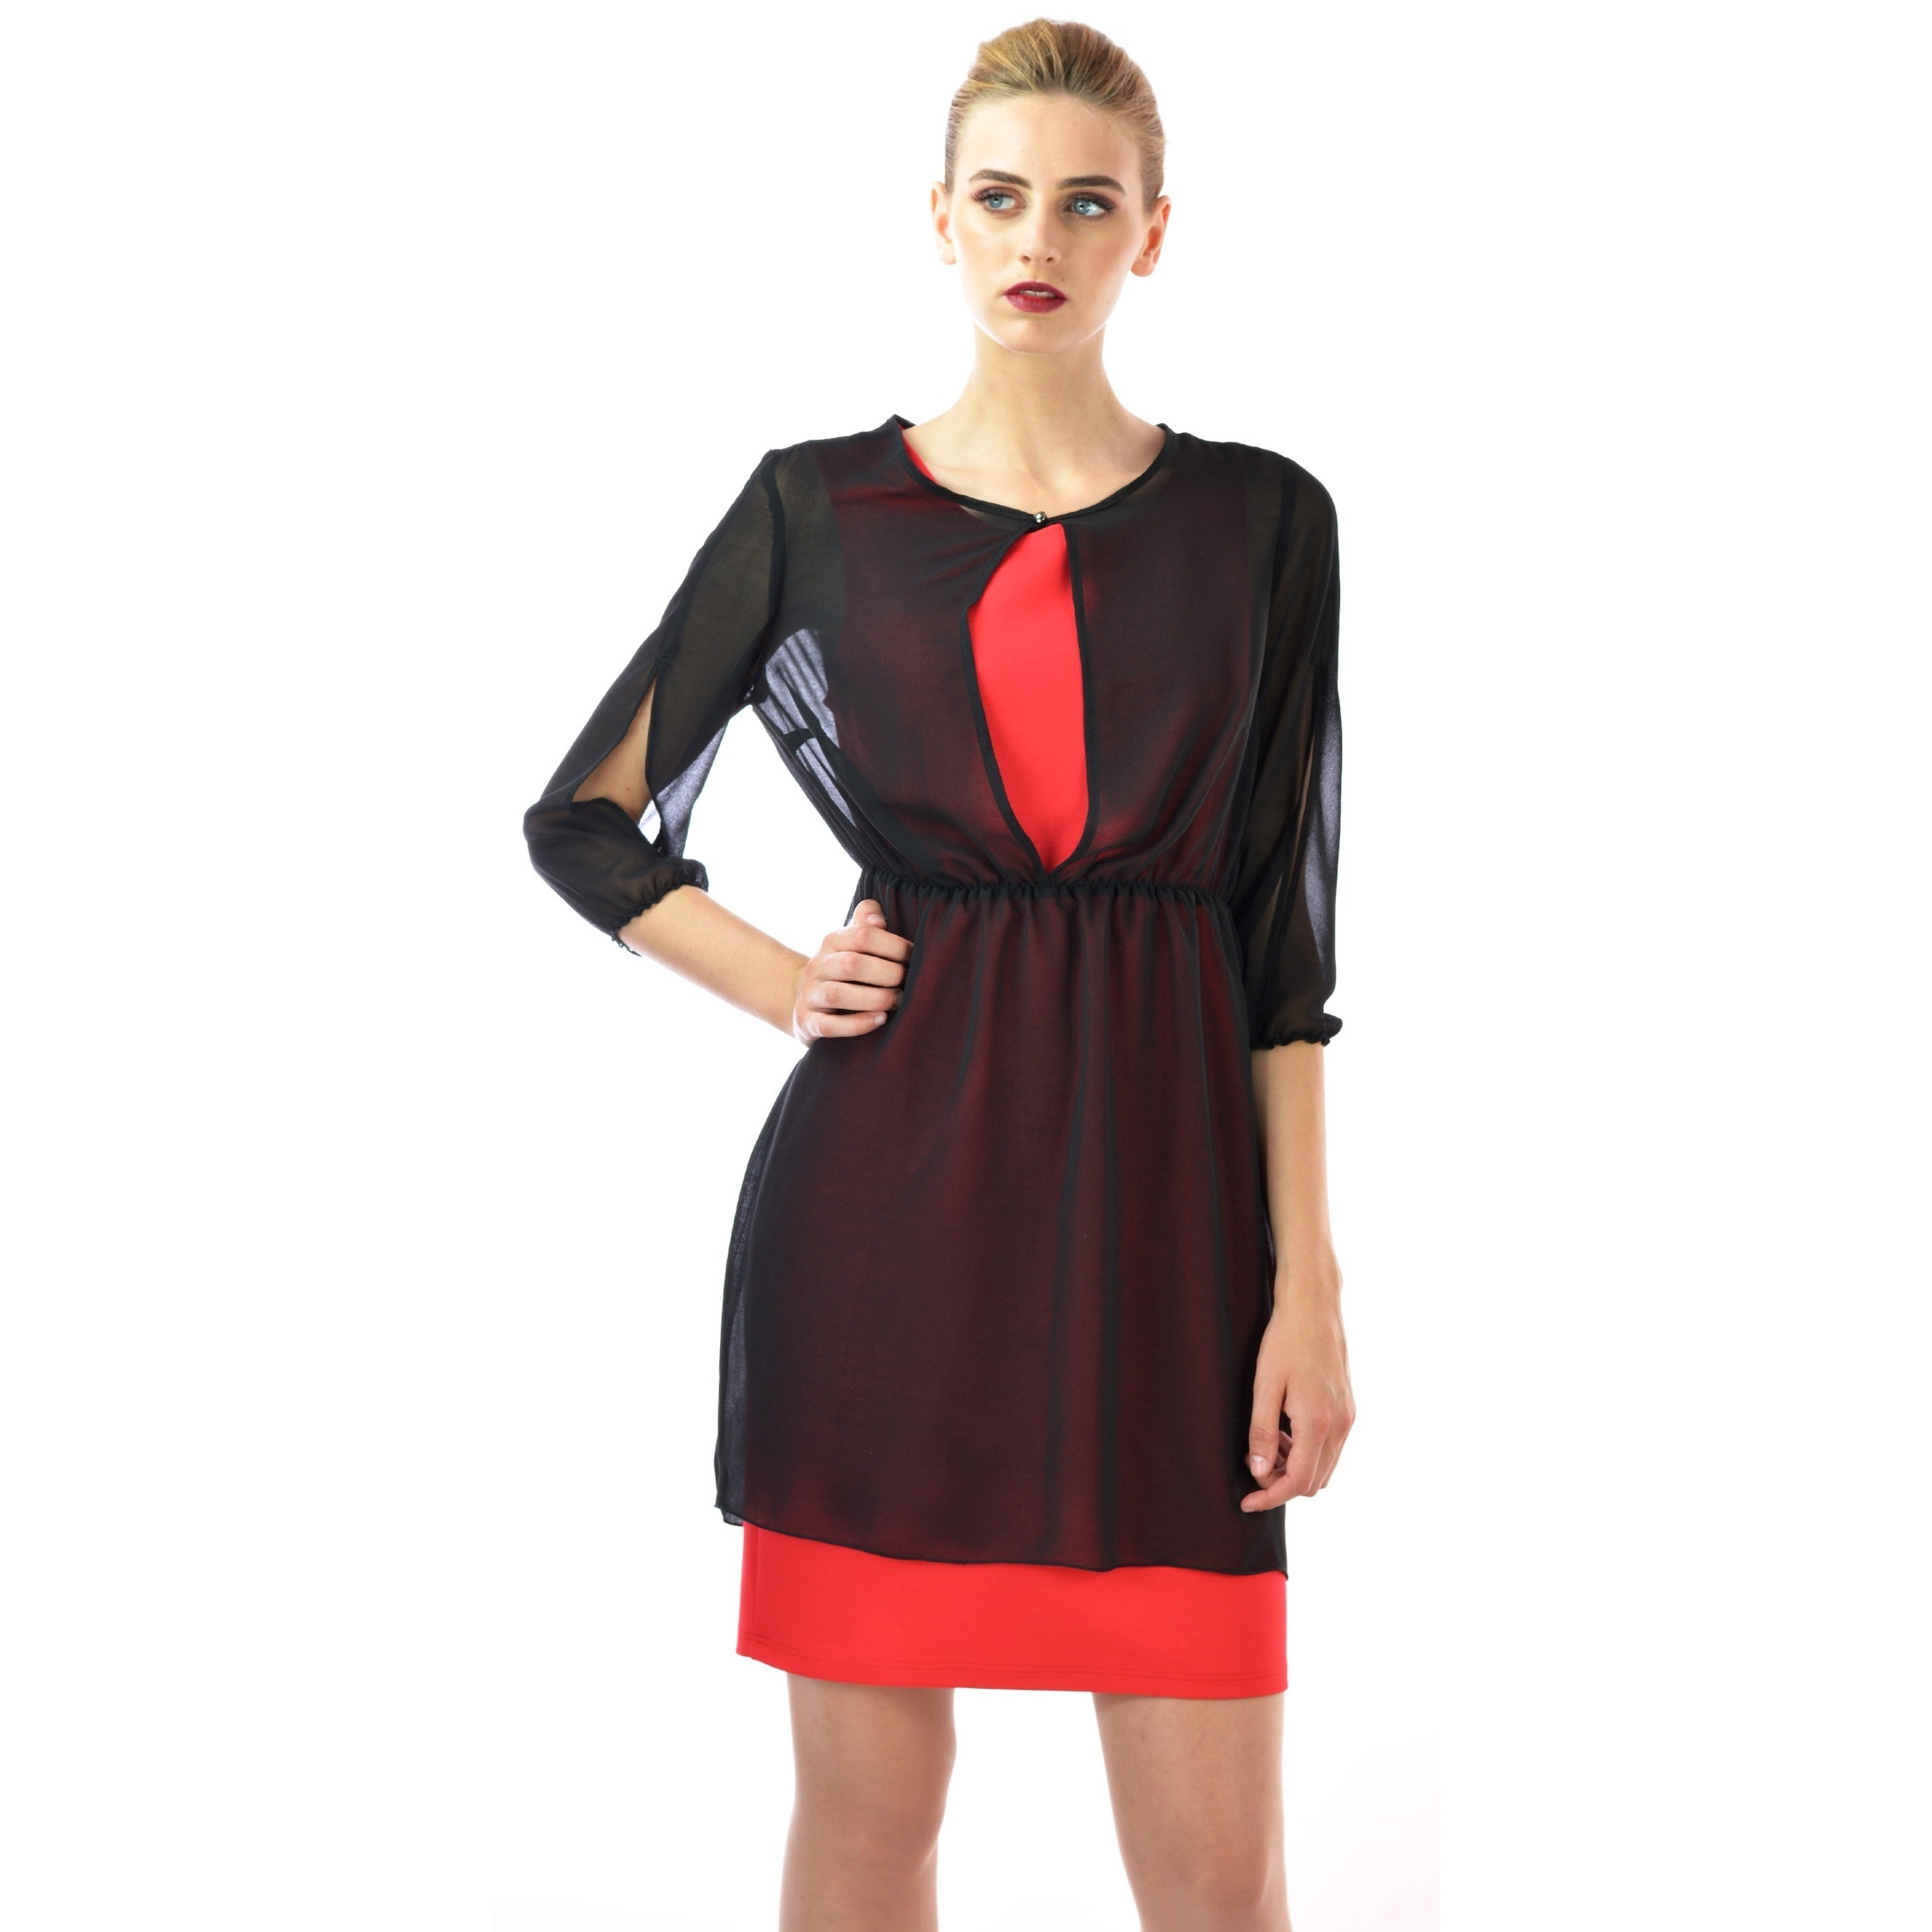 ženska crno-crvena haljina,women's black-red dress